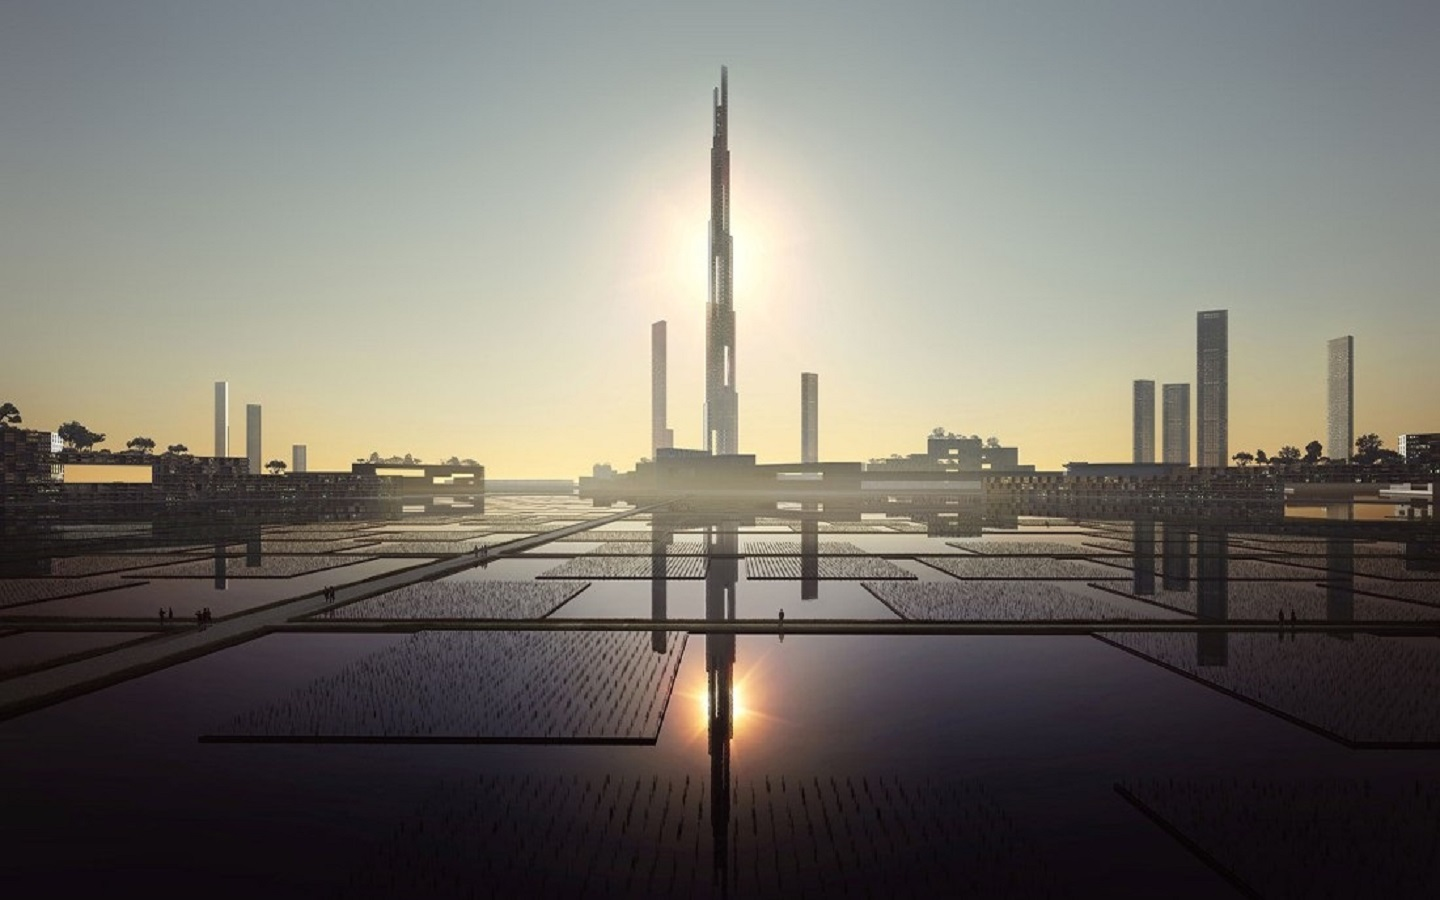 A rendition of Sky mile tower Tokyo